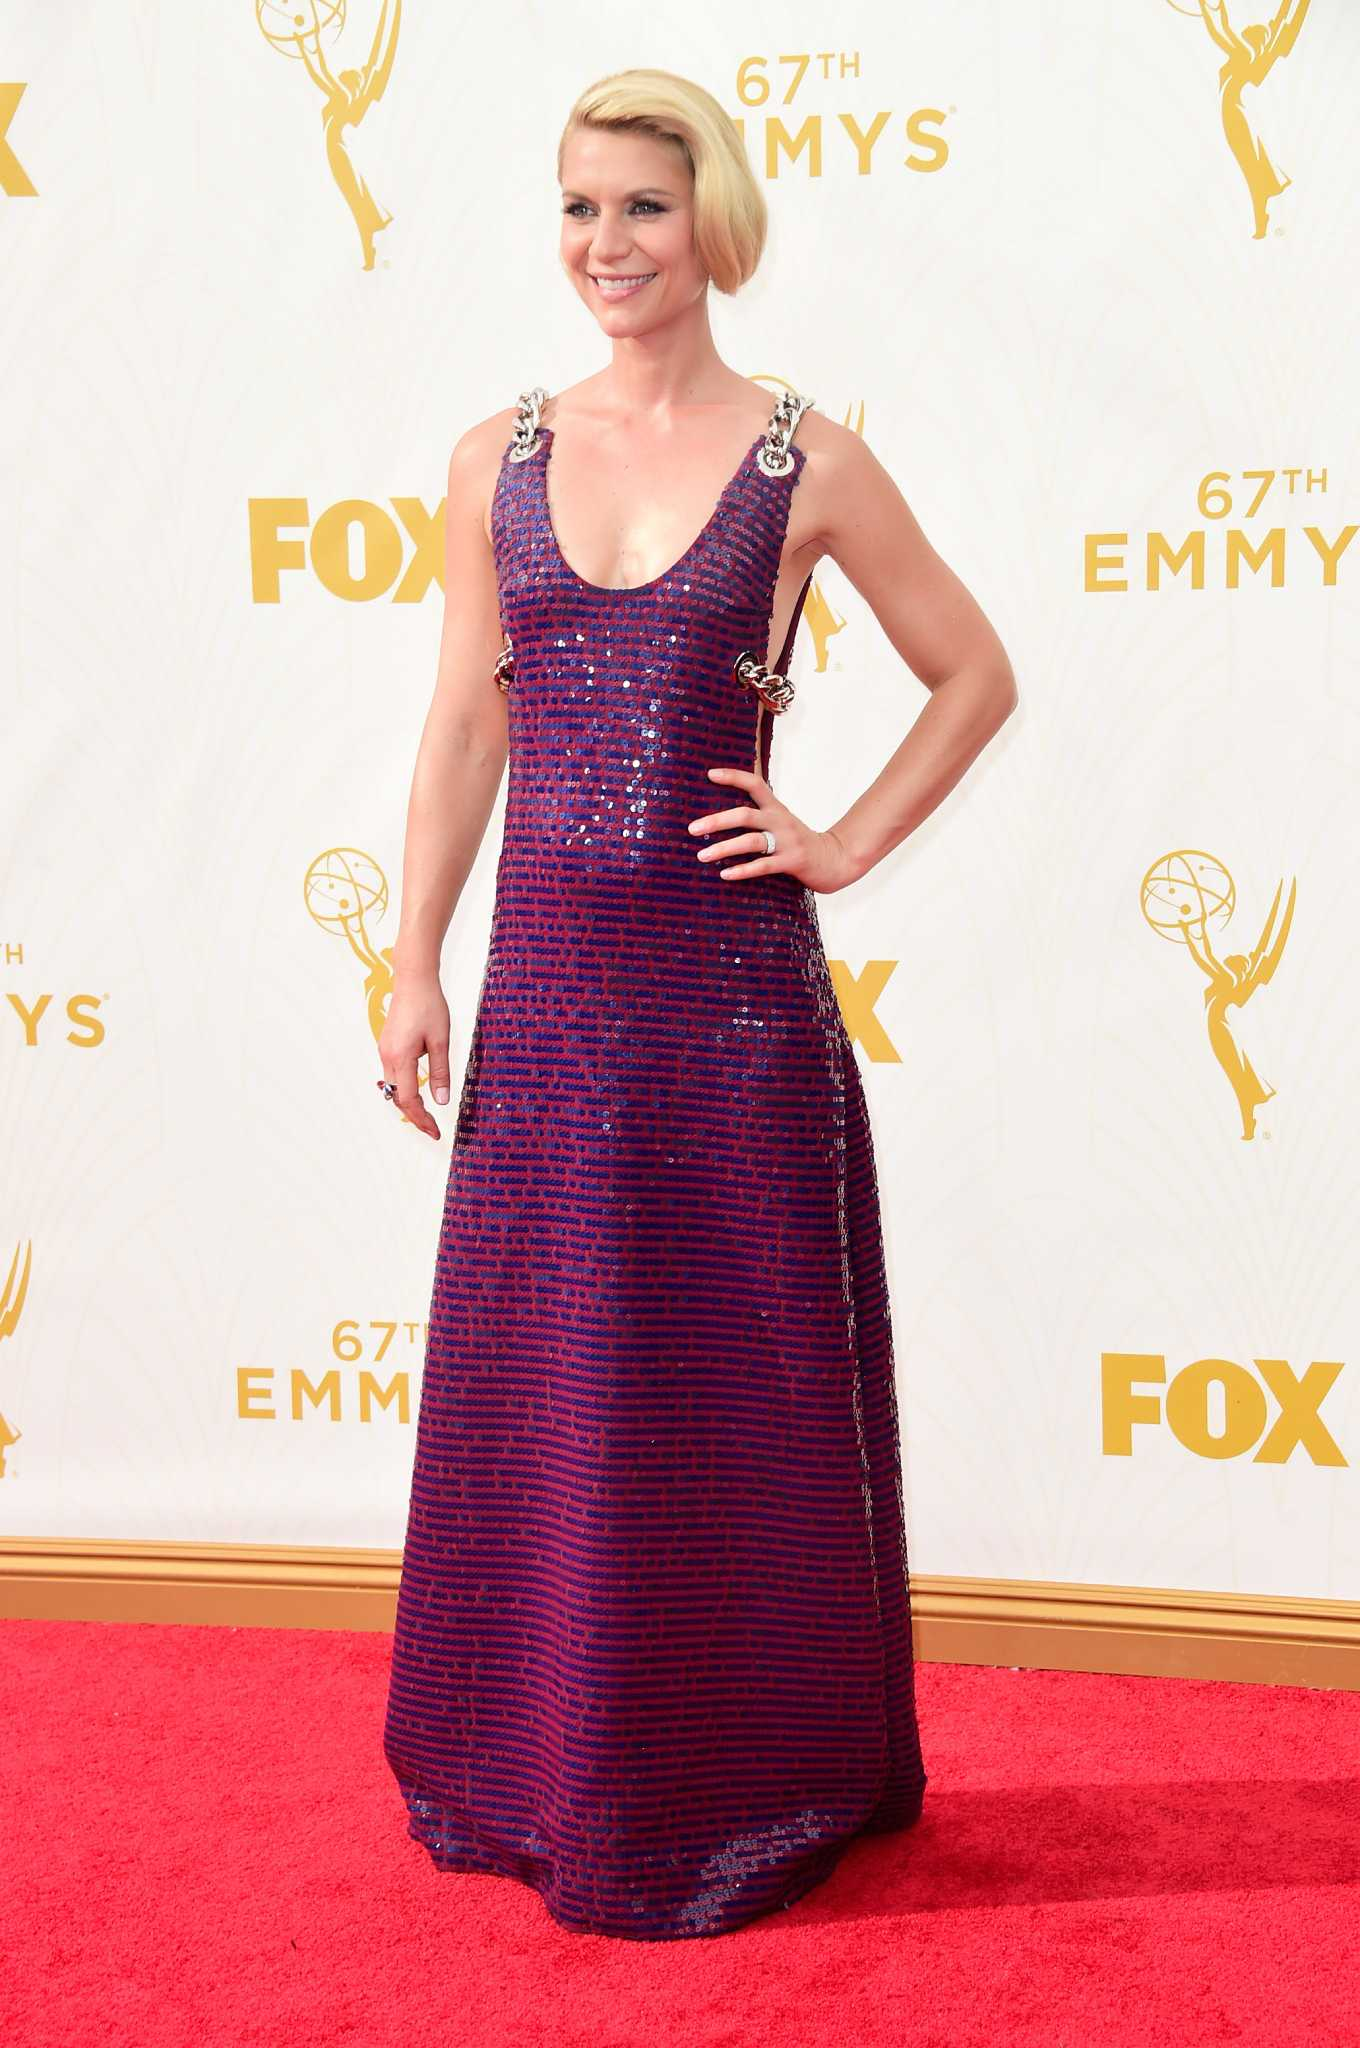 Emmy s red carpet the glam and the glum beaumont enterprise